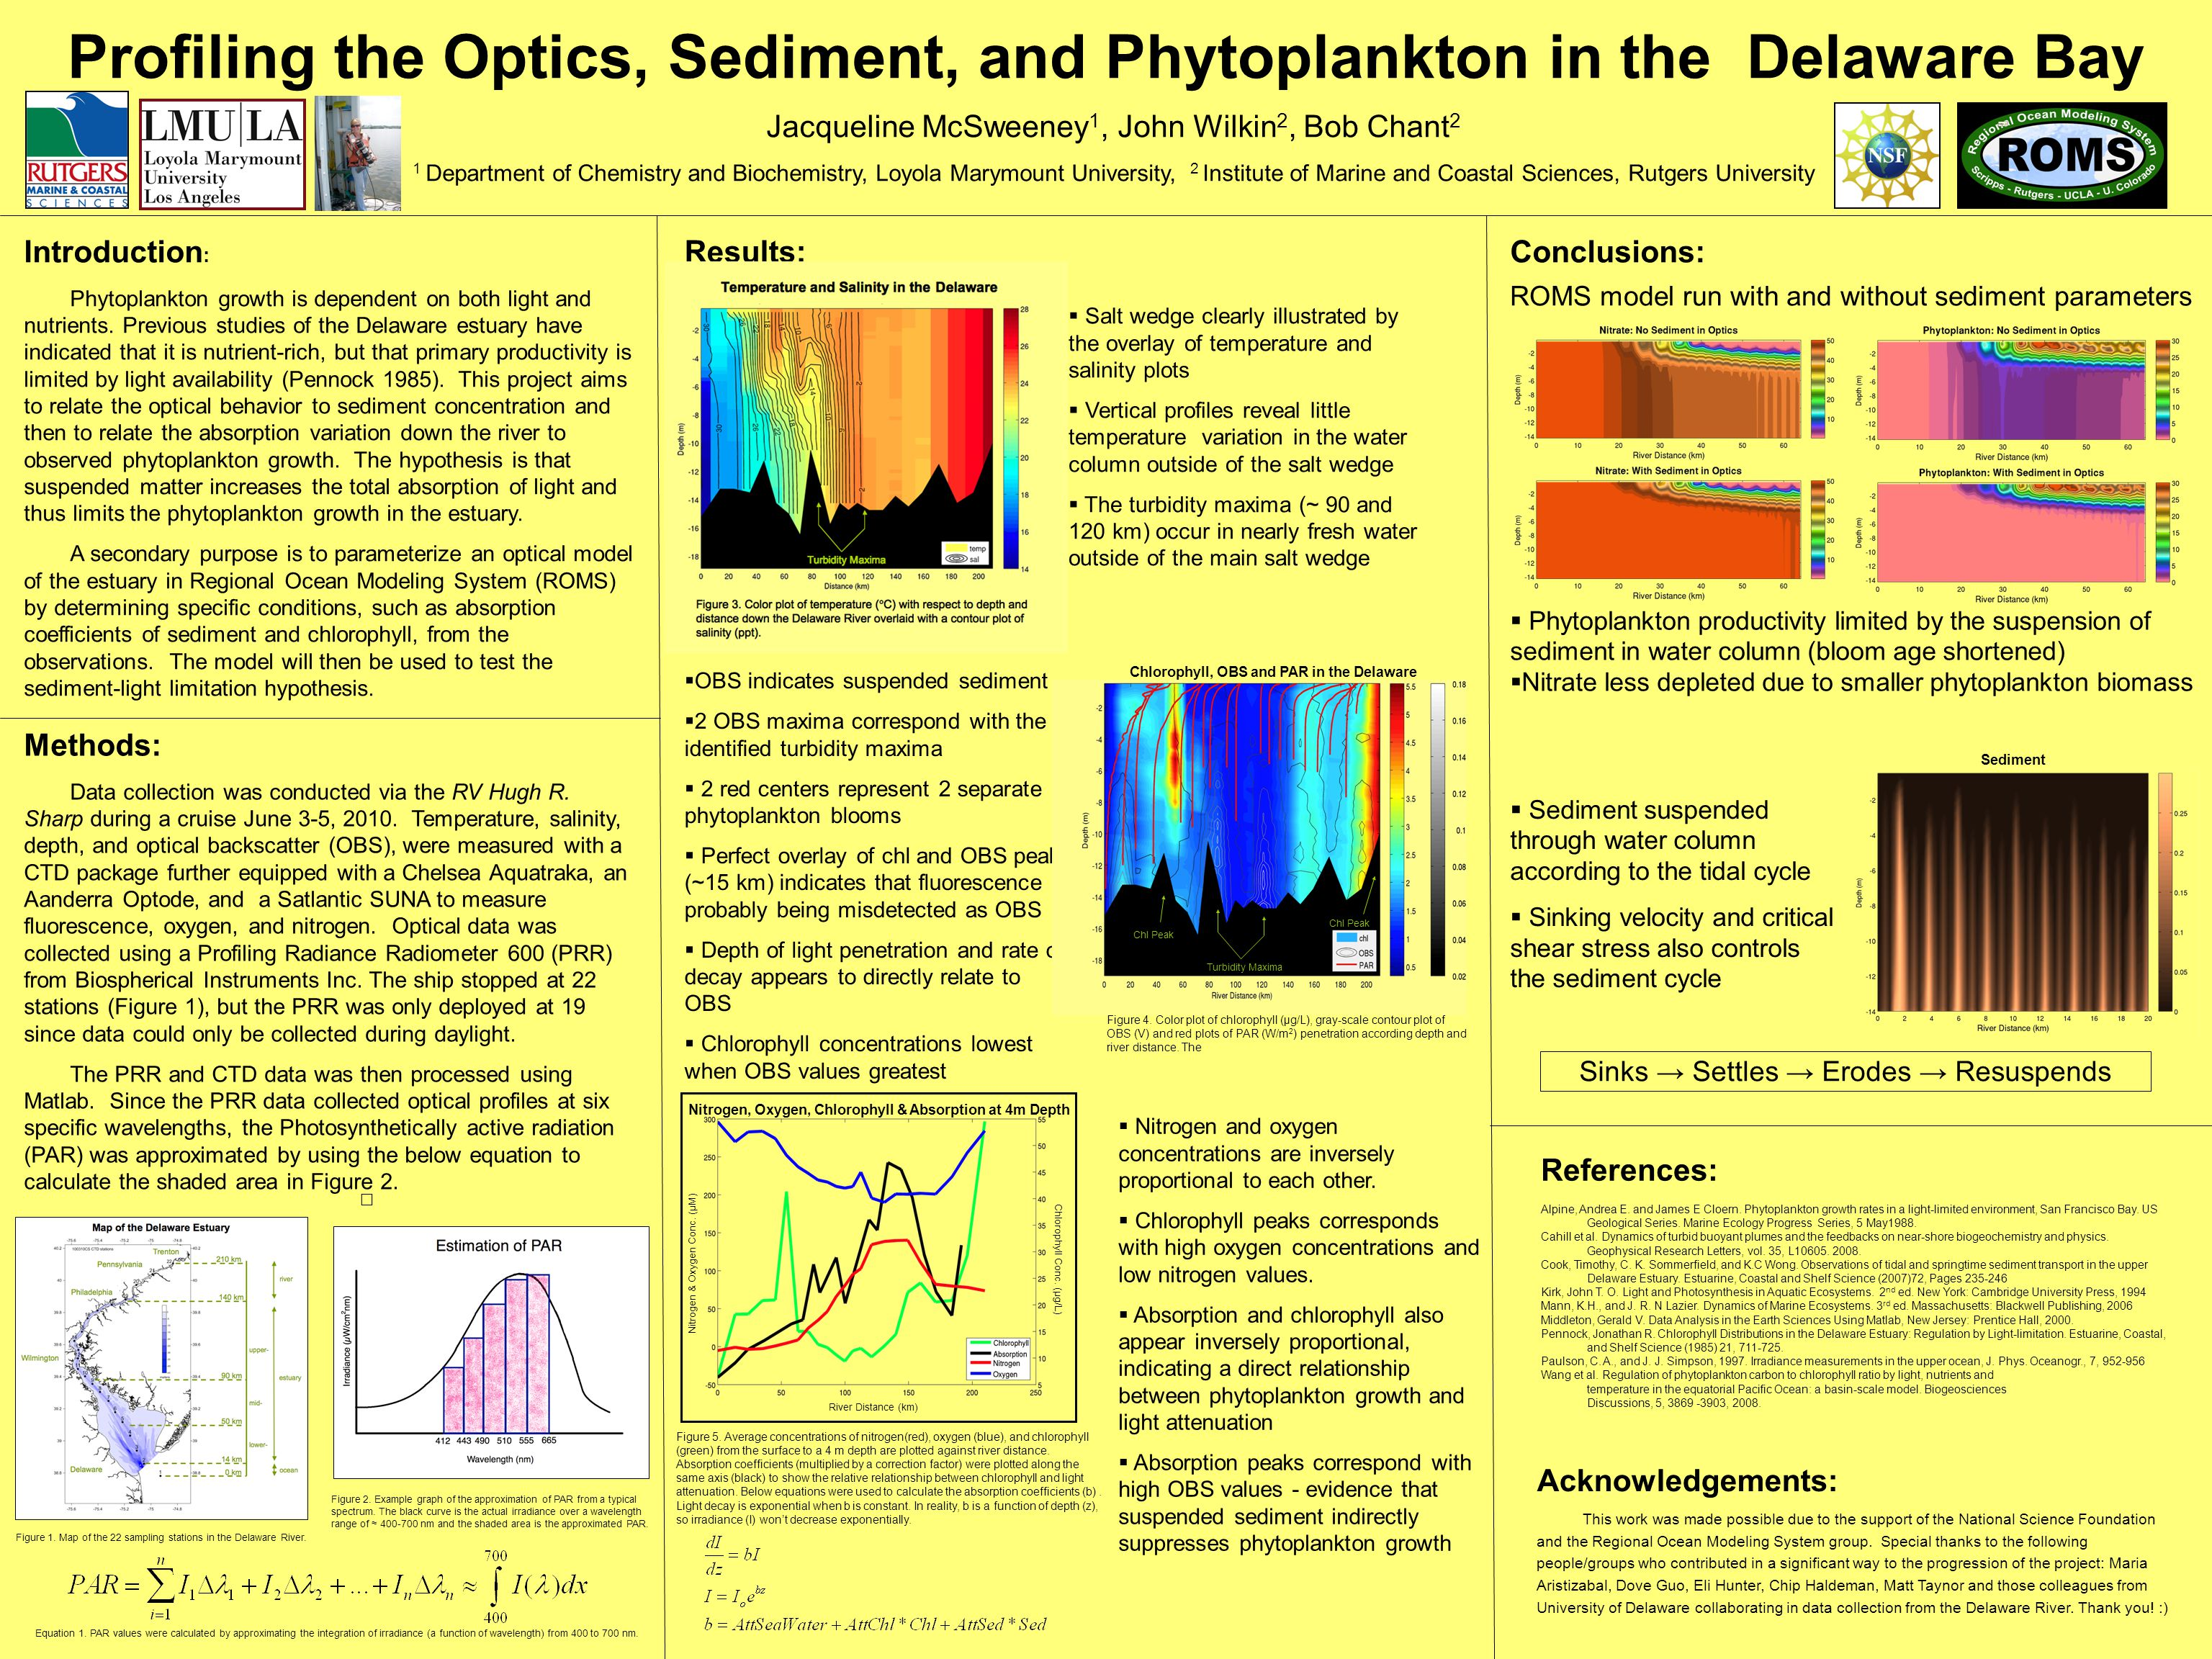 Profiling the Optics, Sediment, and Phytoplankton in the Delaware Bay Introduction : Phytoplankton growth is dependent on both light and nutrients.